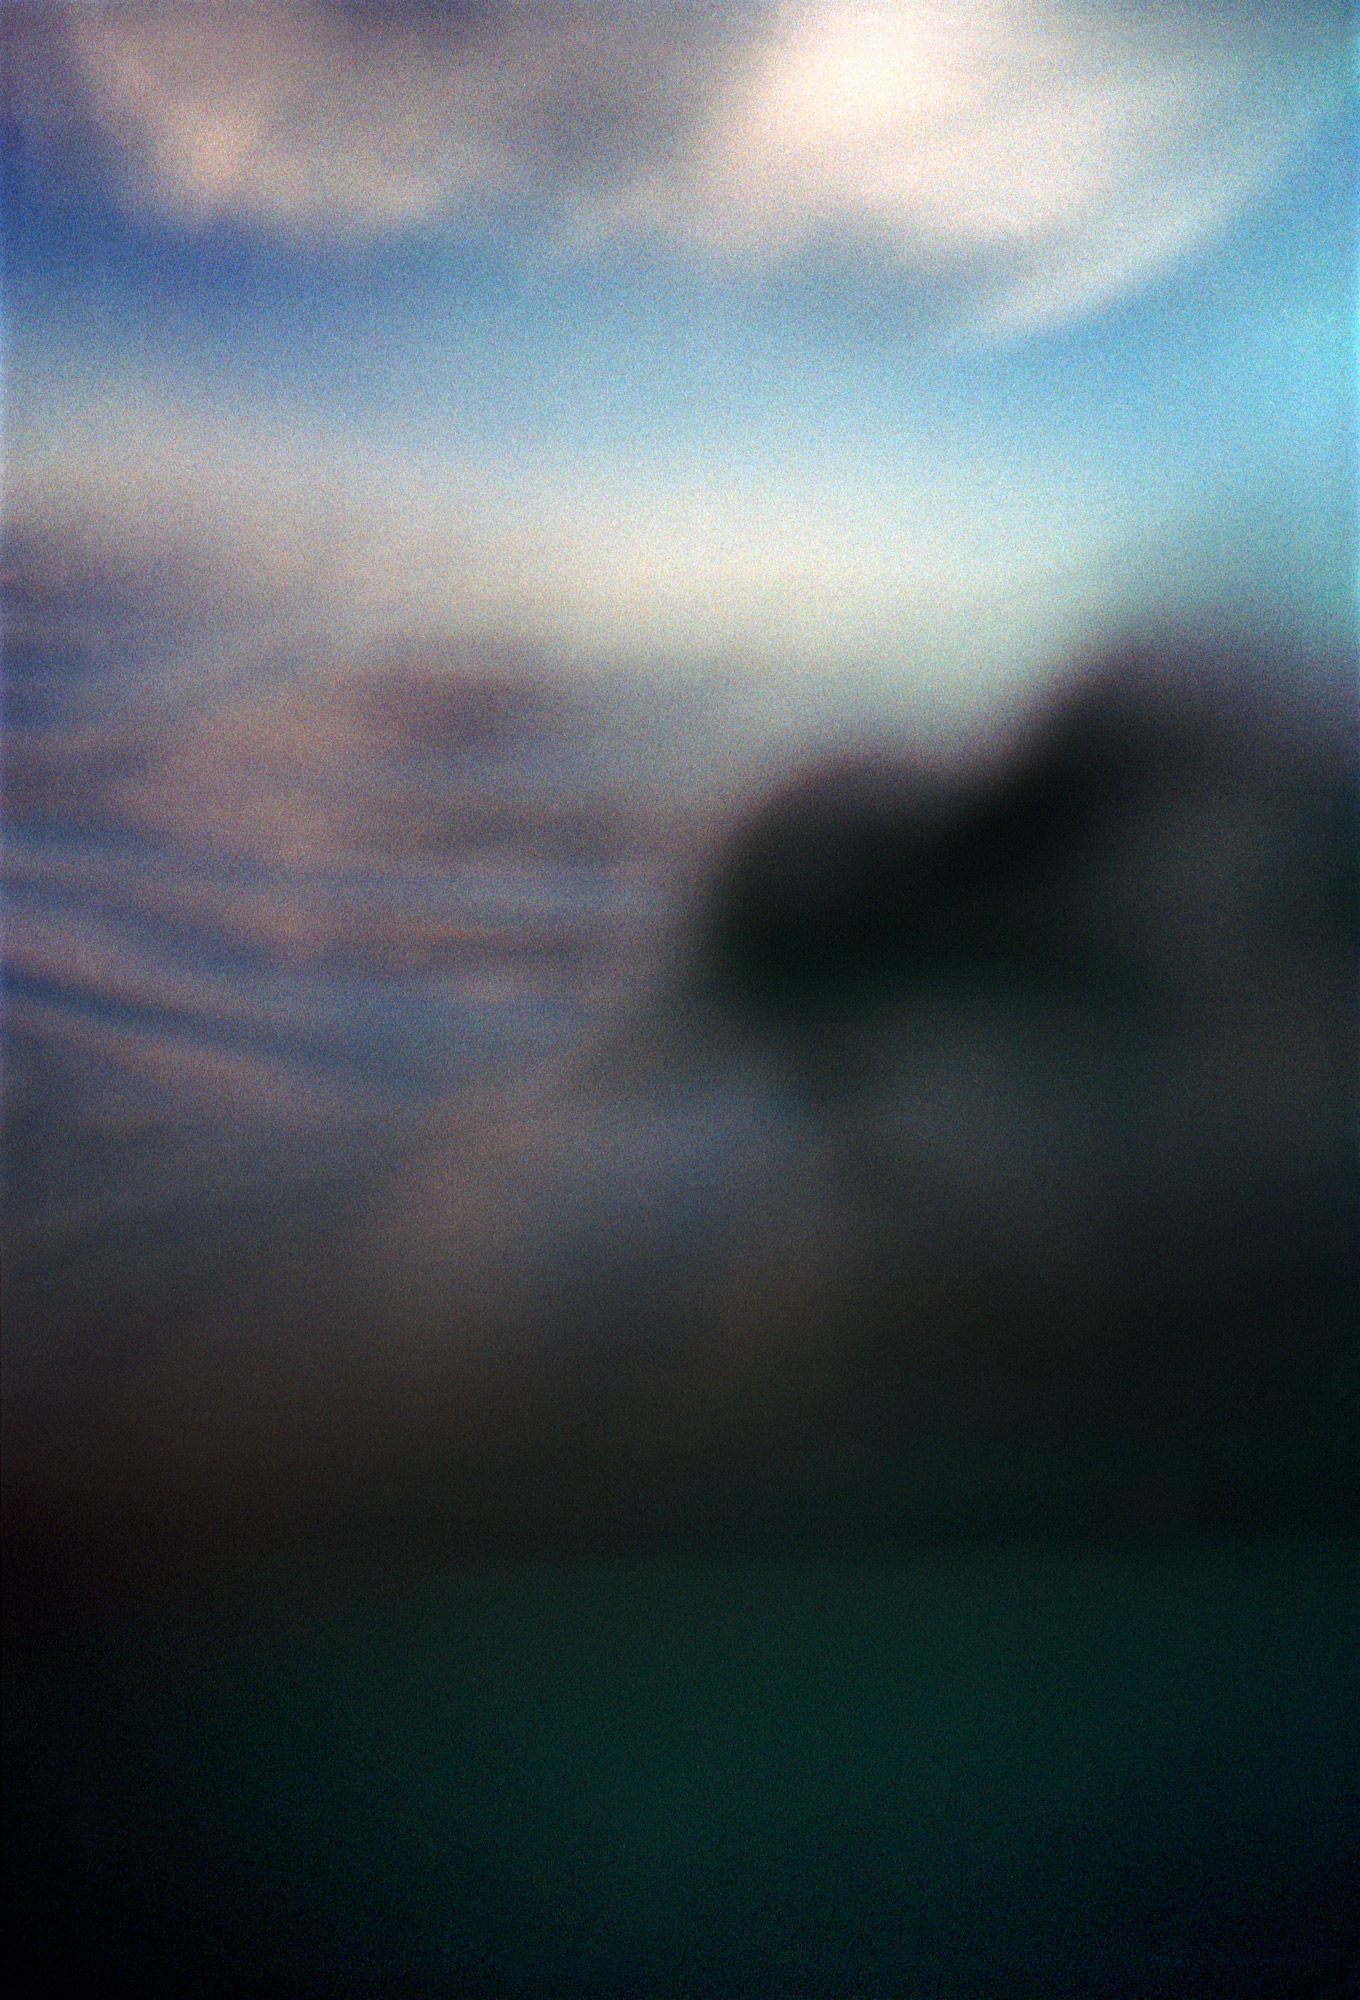 Coastal Seas Abstract, Image was photographed while swimming in the sea at Peacehaven beach in the South East of England. Part of a wider Coastal Seas series. Using a Yashica T4 point and shoot.